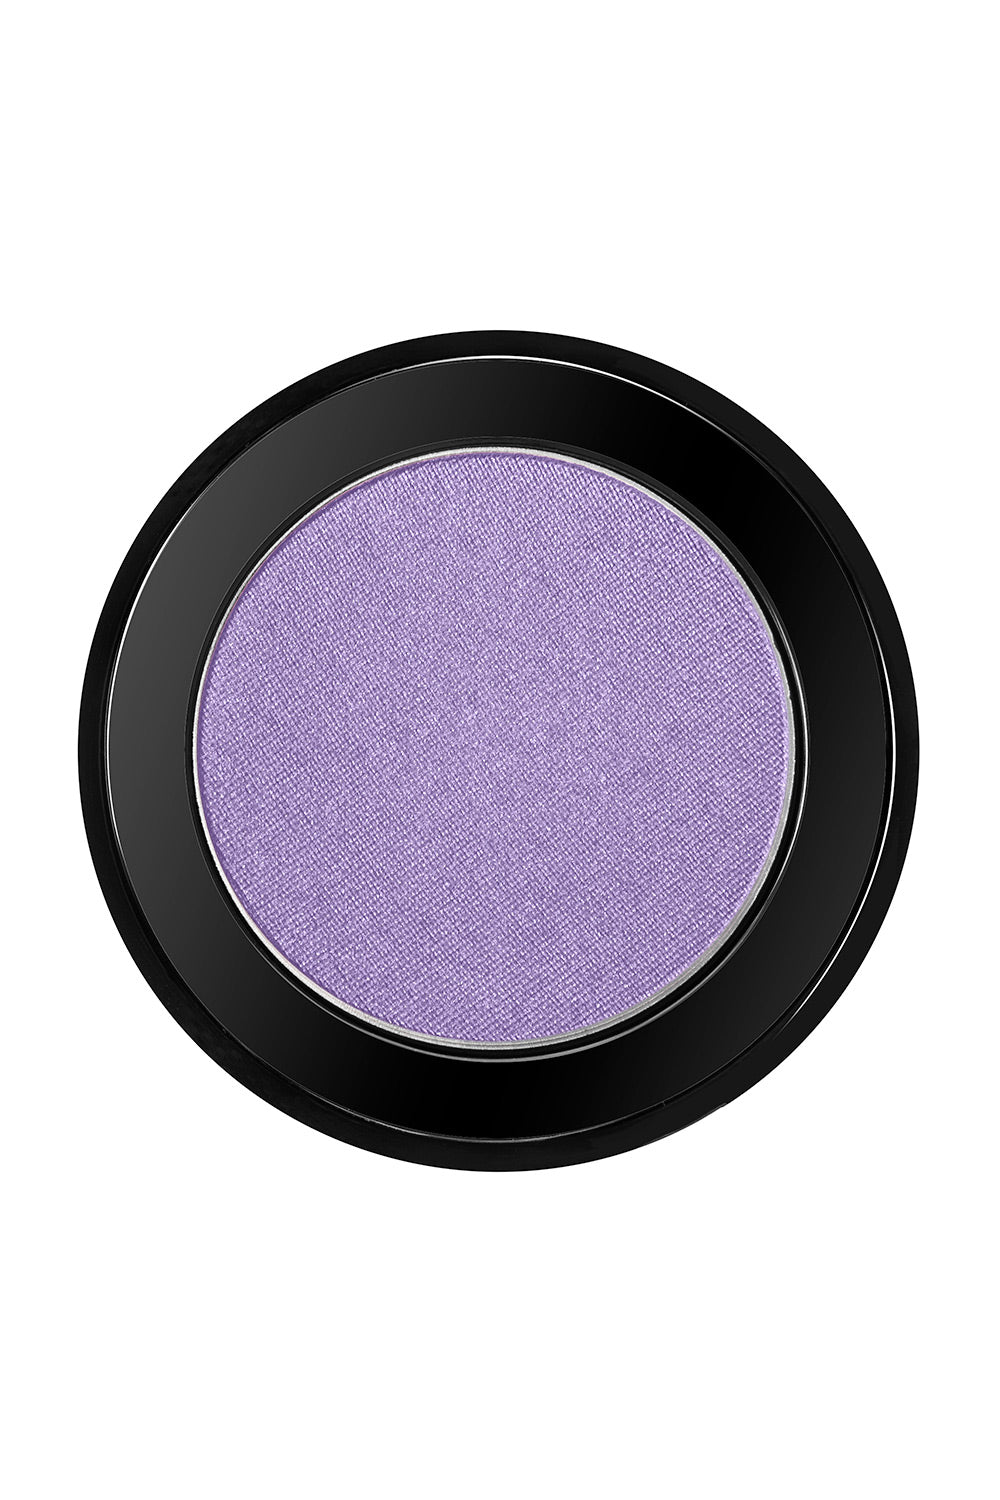 Type 1 Eyeshadow - Blueberry